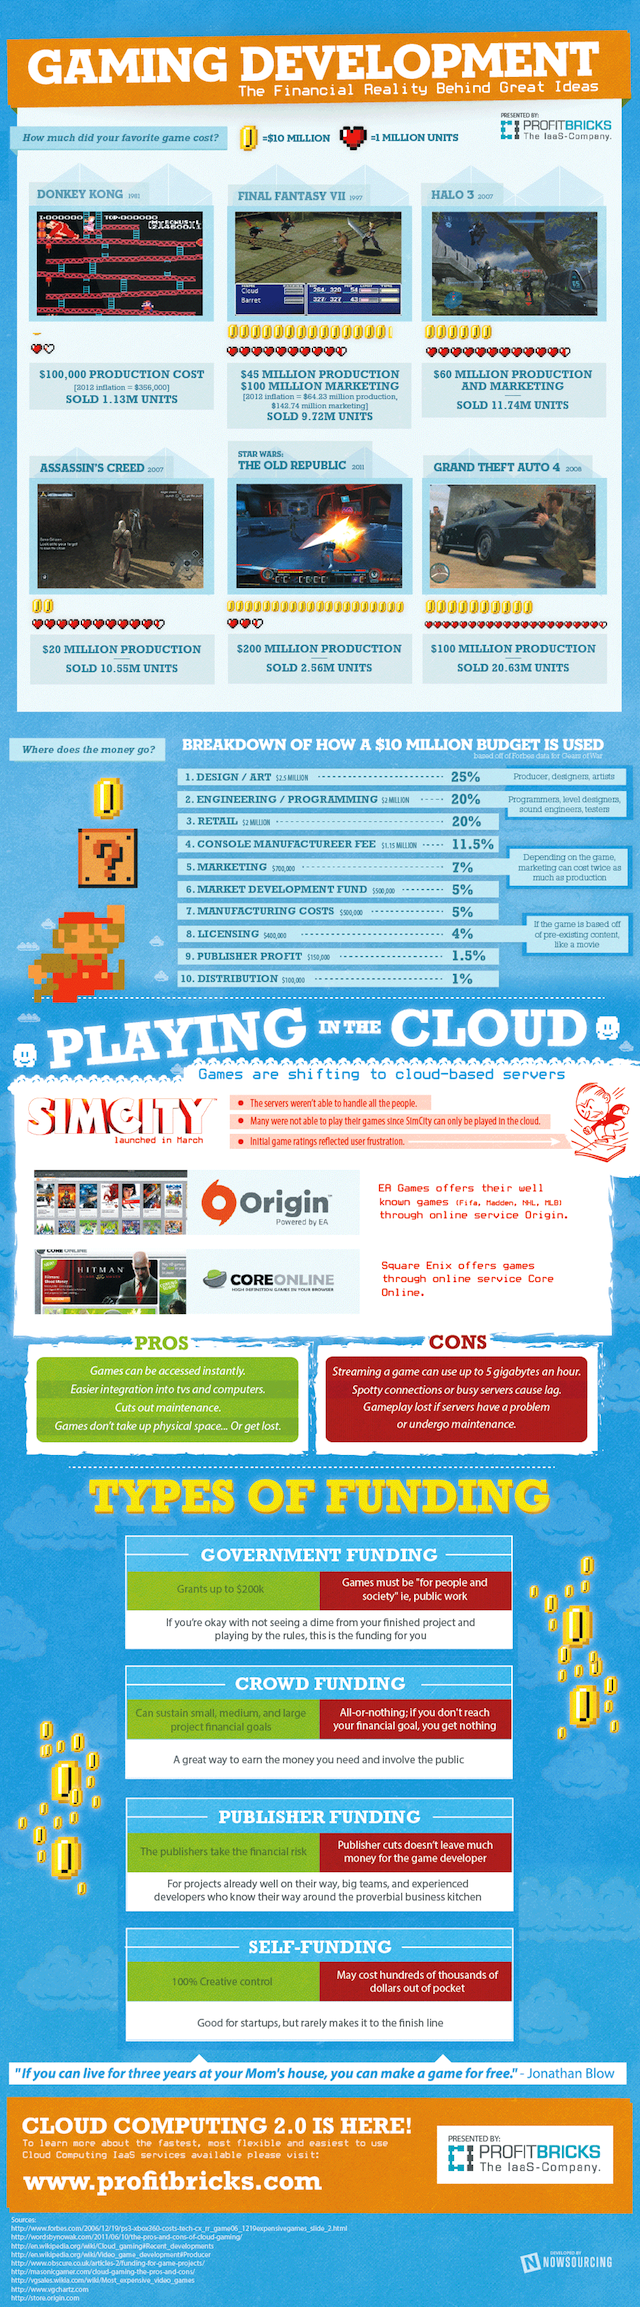 ProfitBricks-Game-Developmen-Financial-Reality-Infographic3